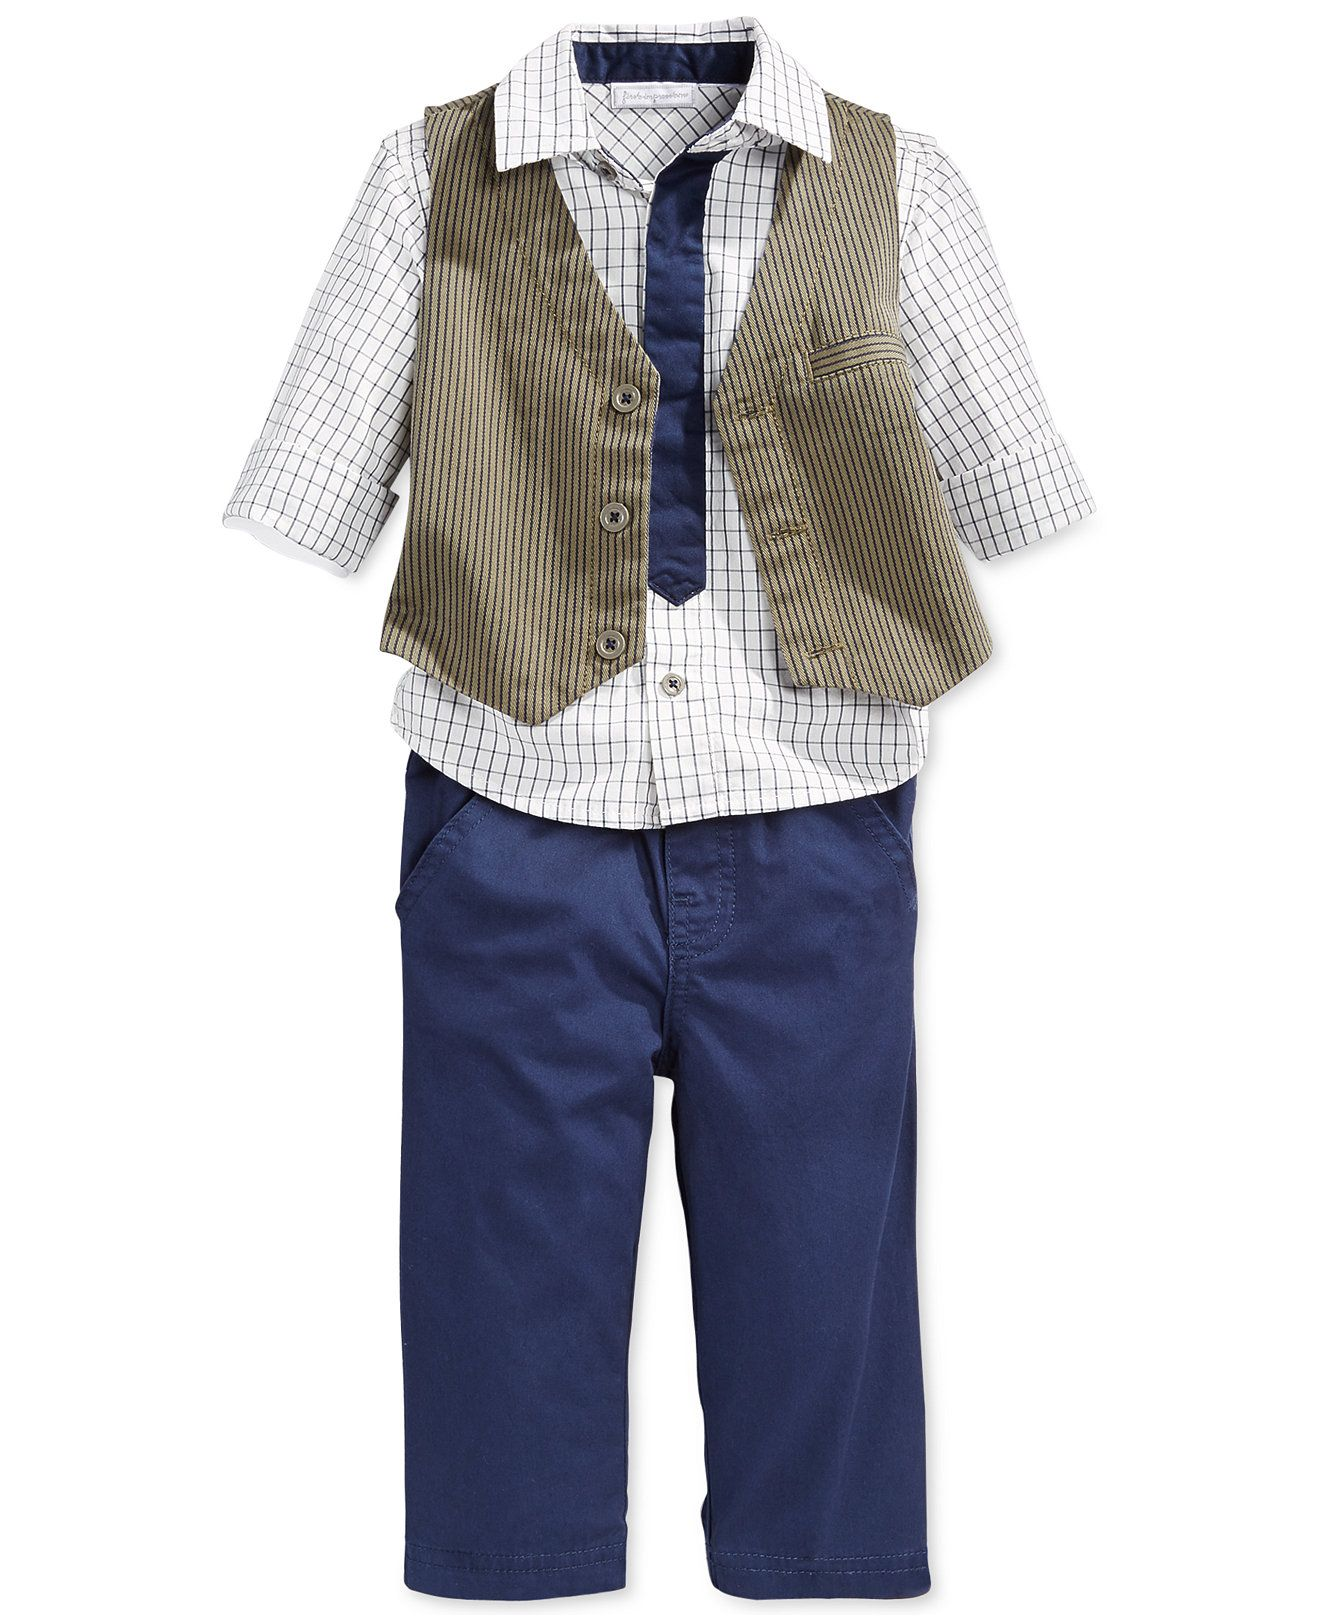 35e8a94843d3 First Impressions Baby Boys' 3-Piece Checkered Shirt, Vest & Pants Set,  Only at Macy's - Sets - Kids & Baby - Macy's